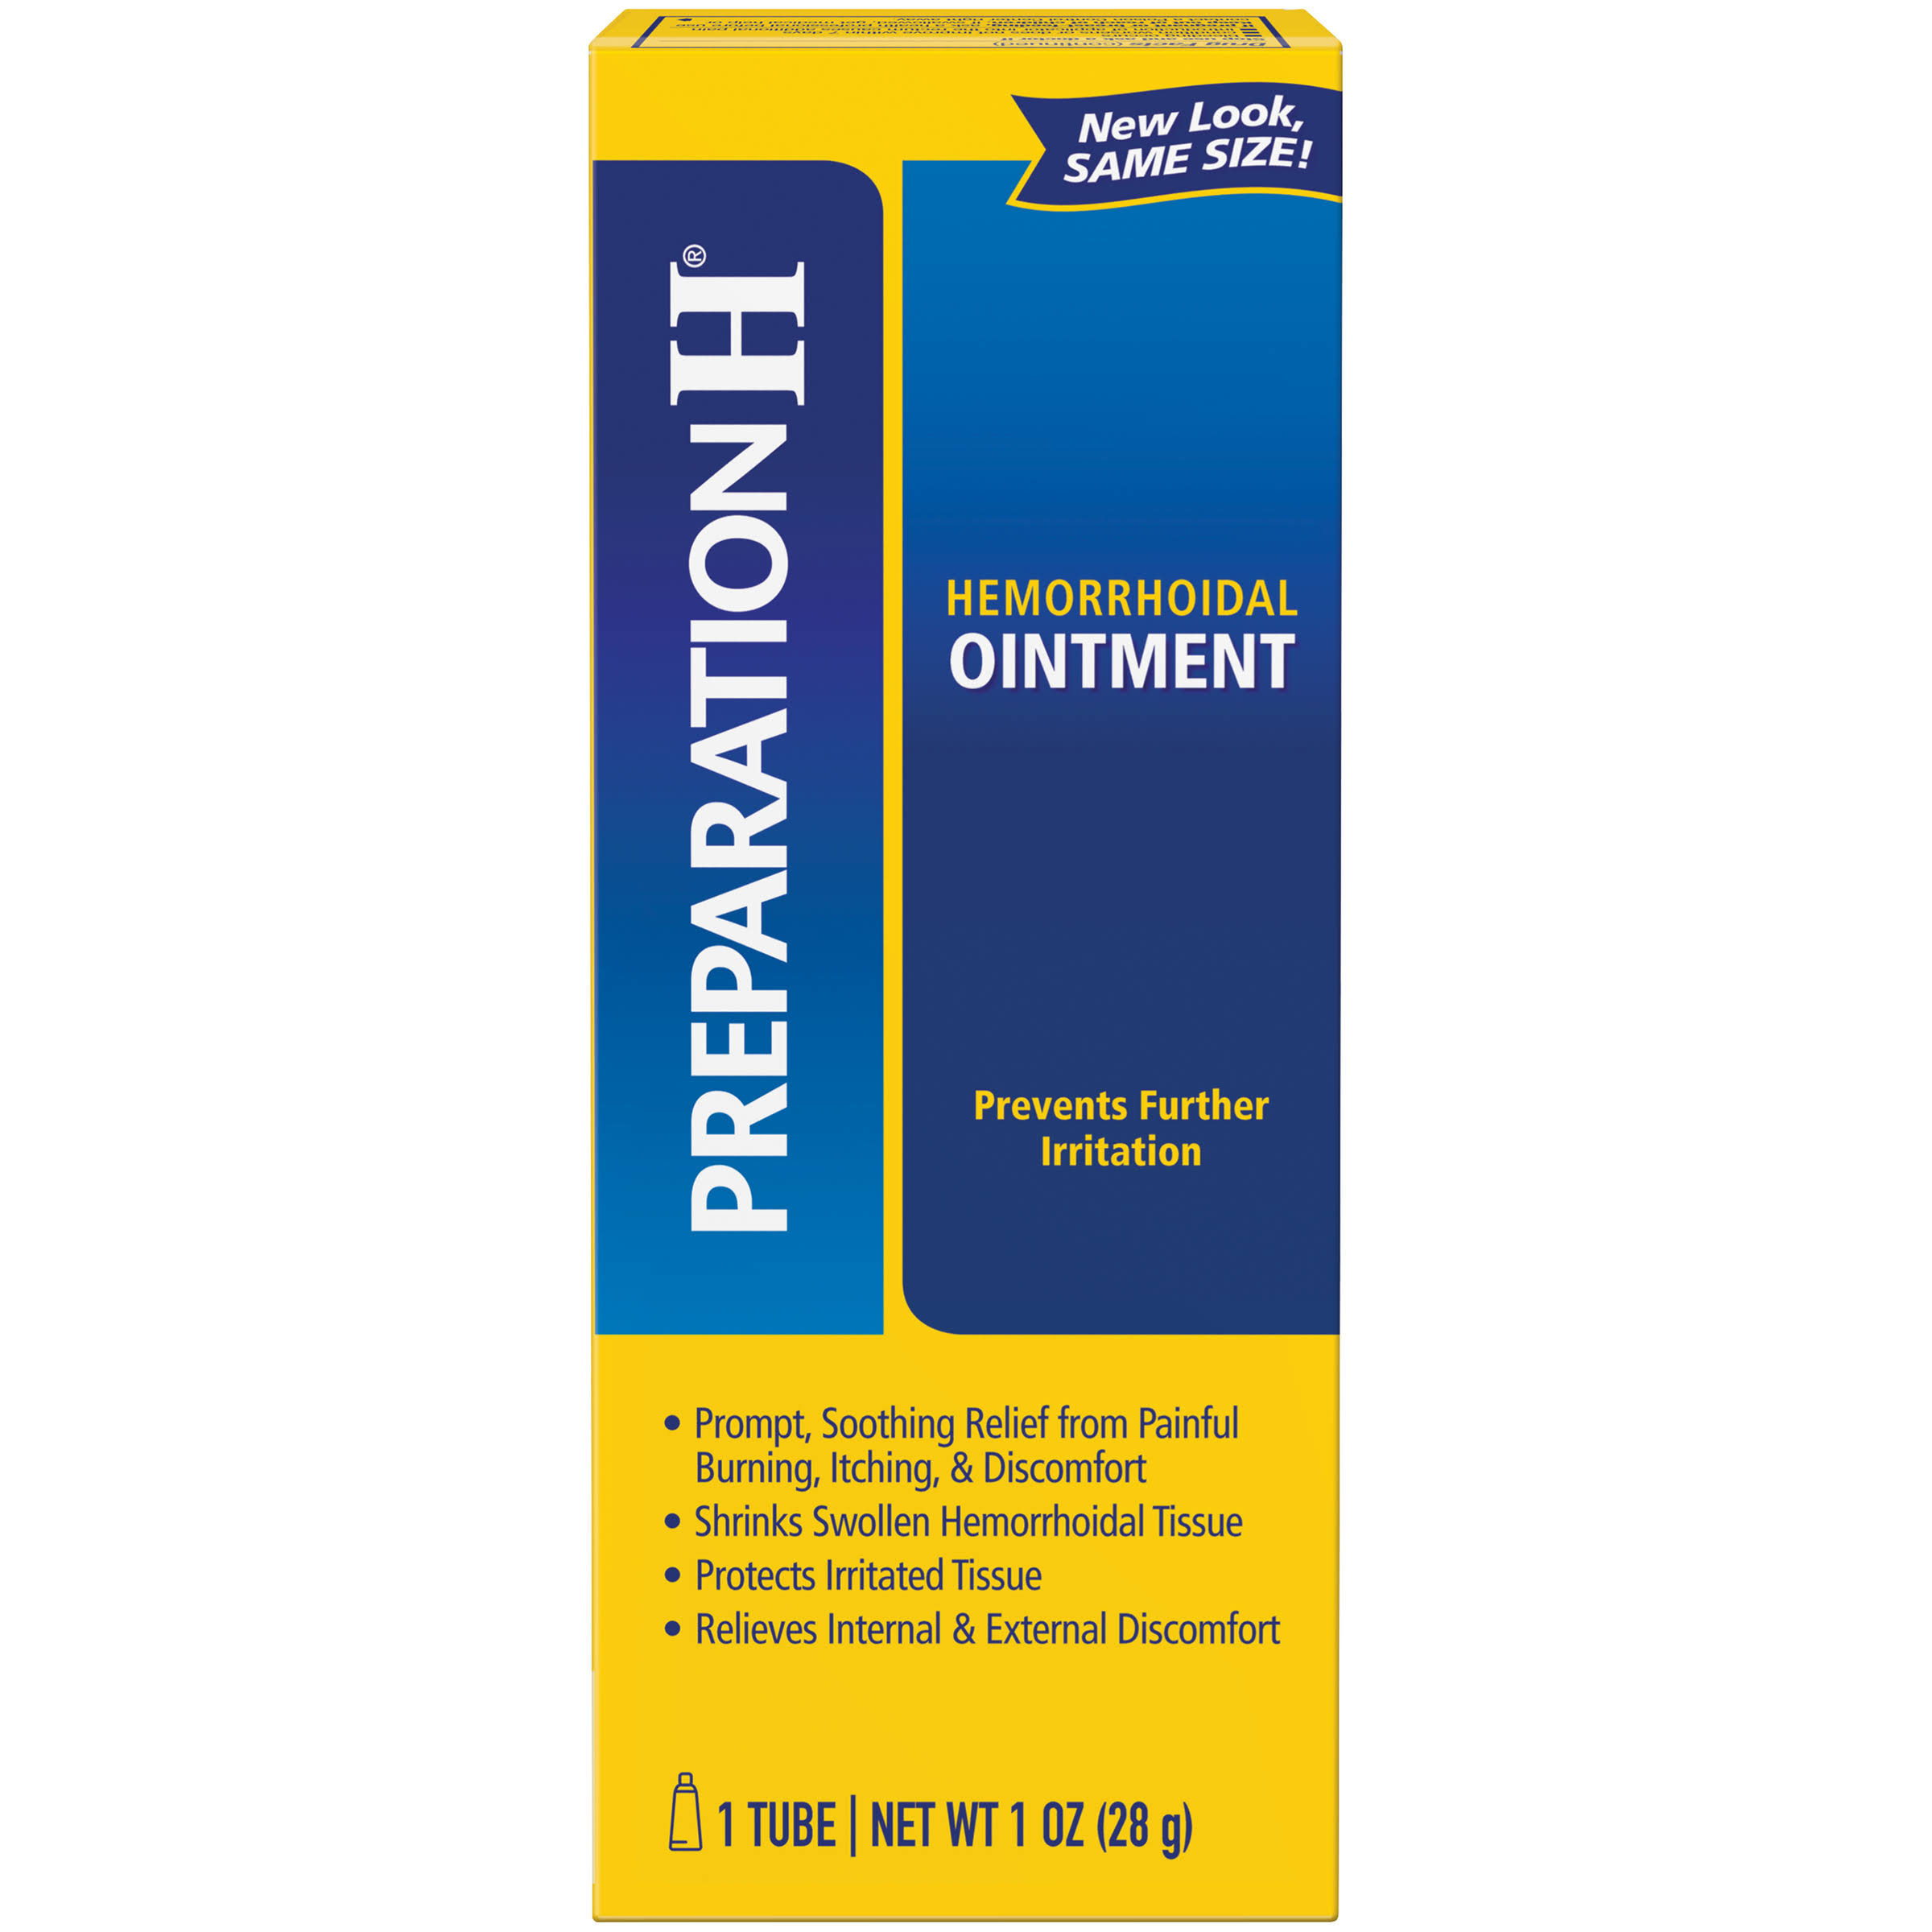 Preparation H Ointment, Hemorrhoidal - 1 tube, 1 oz